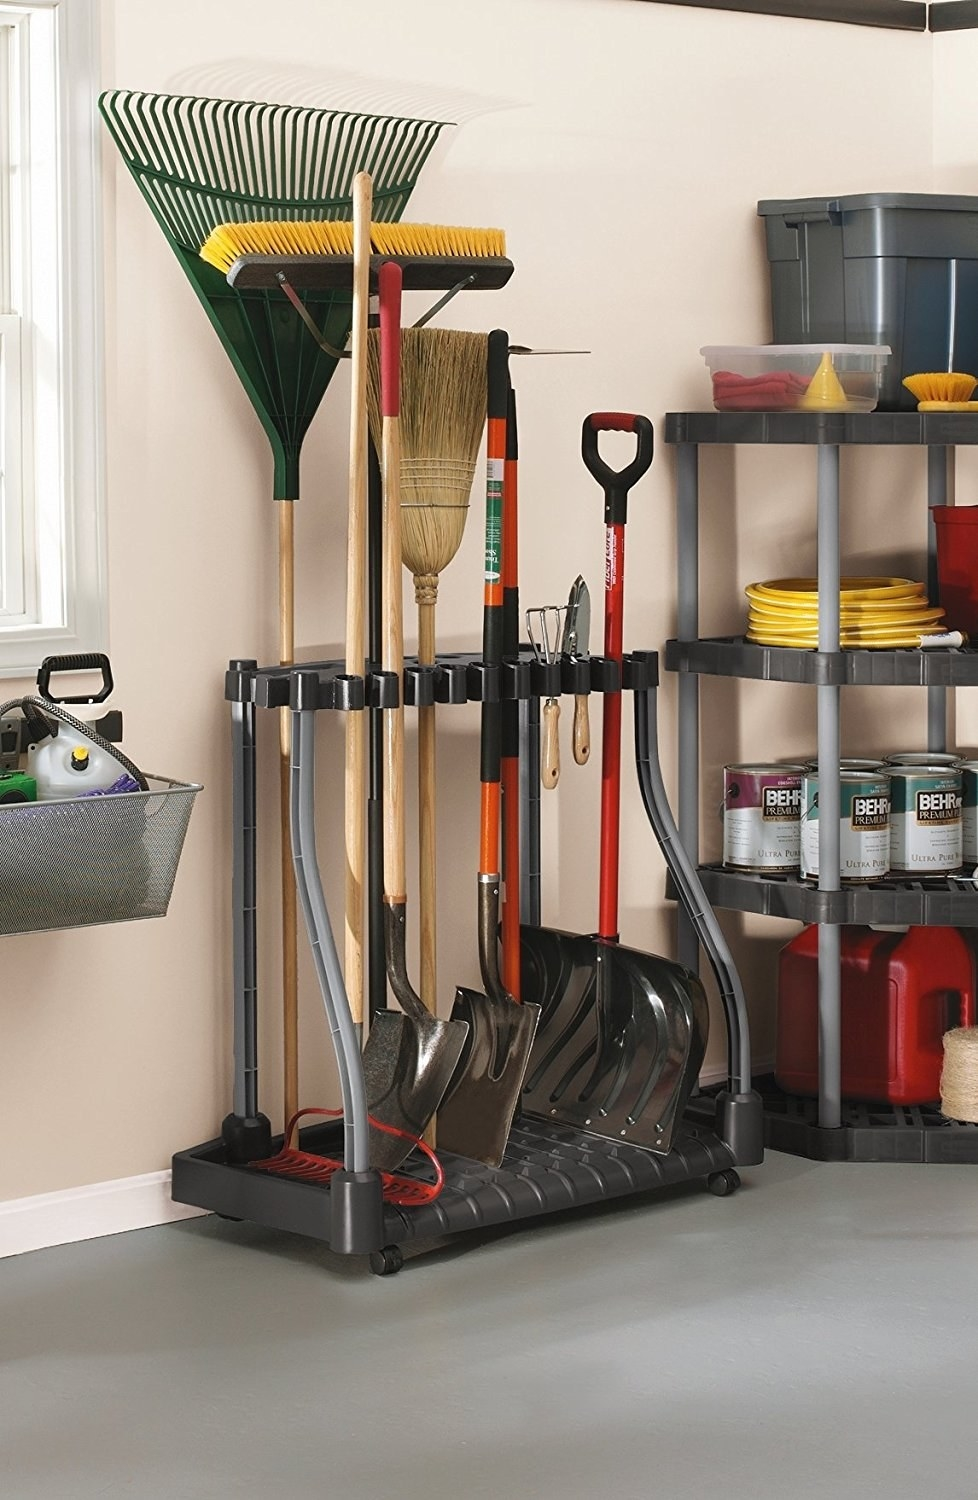 rack with rakes and heavy shovels slotted into it in a garage